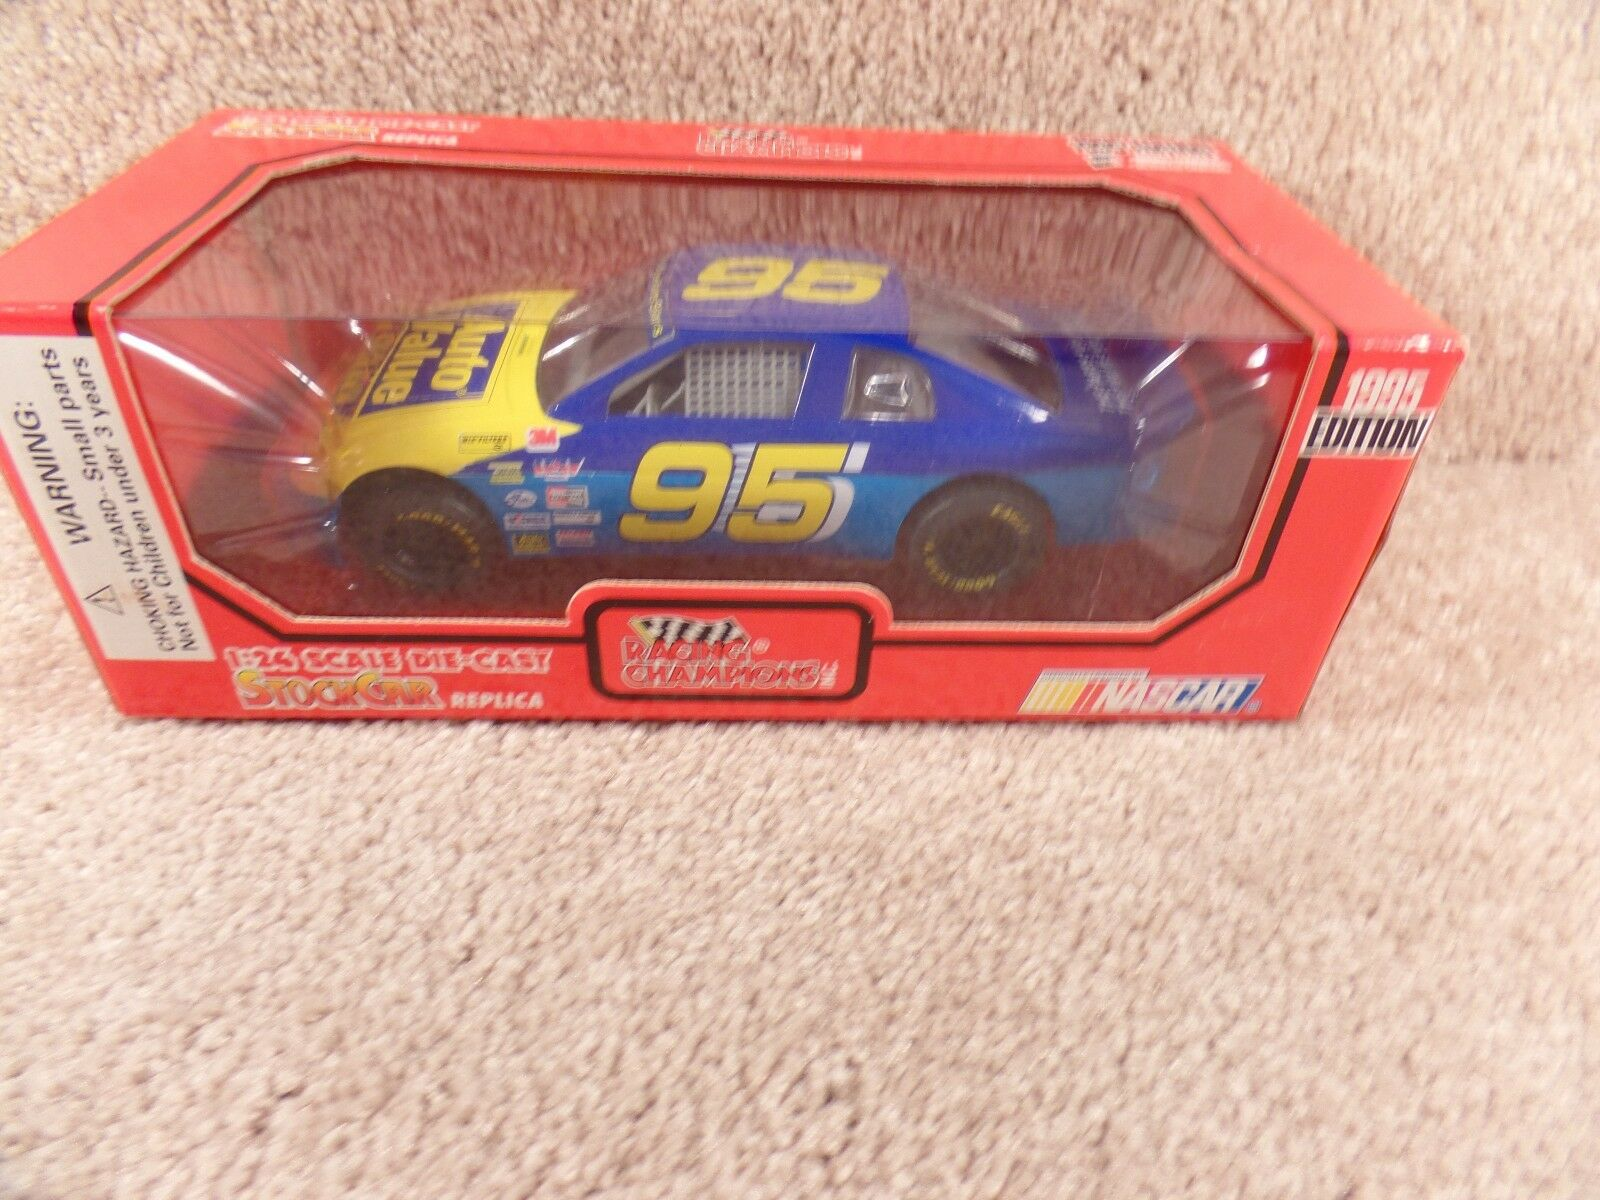 New 1995 Racing Champions 1 24 Diecast NASCAR Auto Value Chevy Monte Carlo